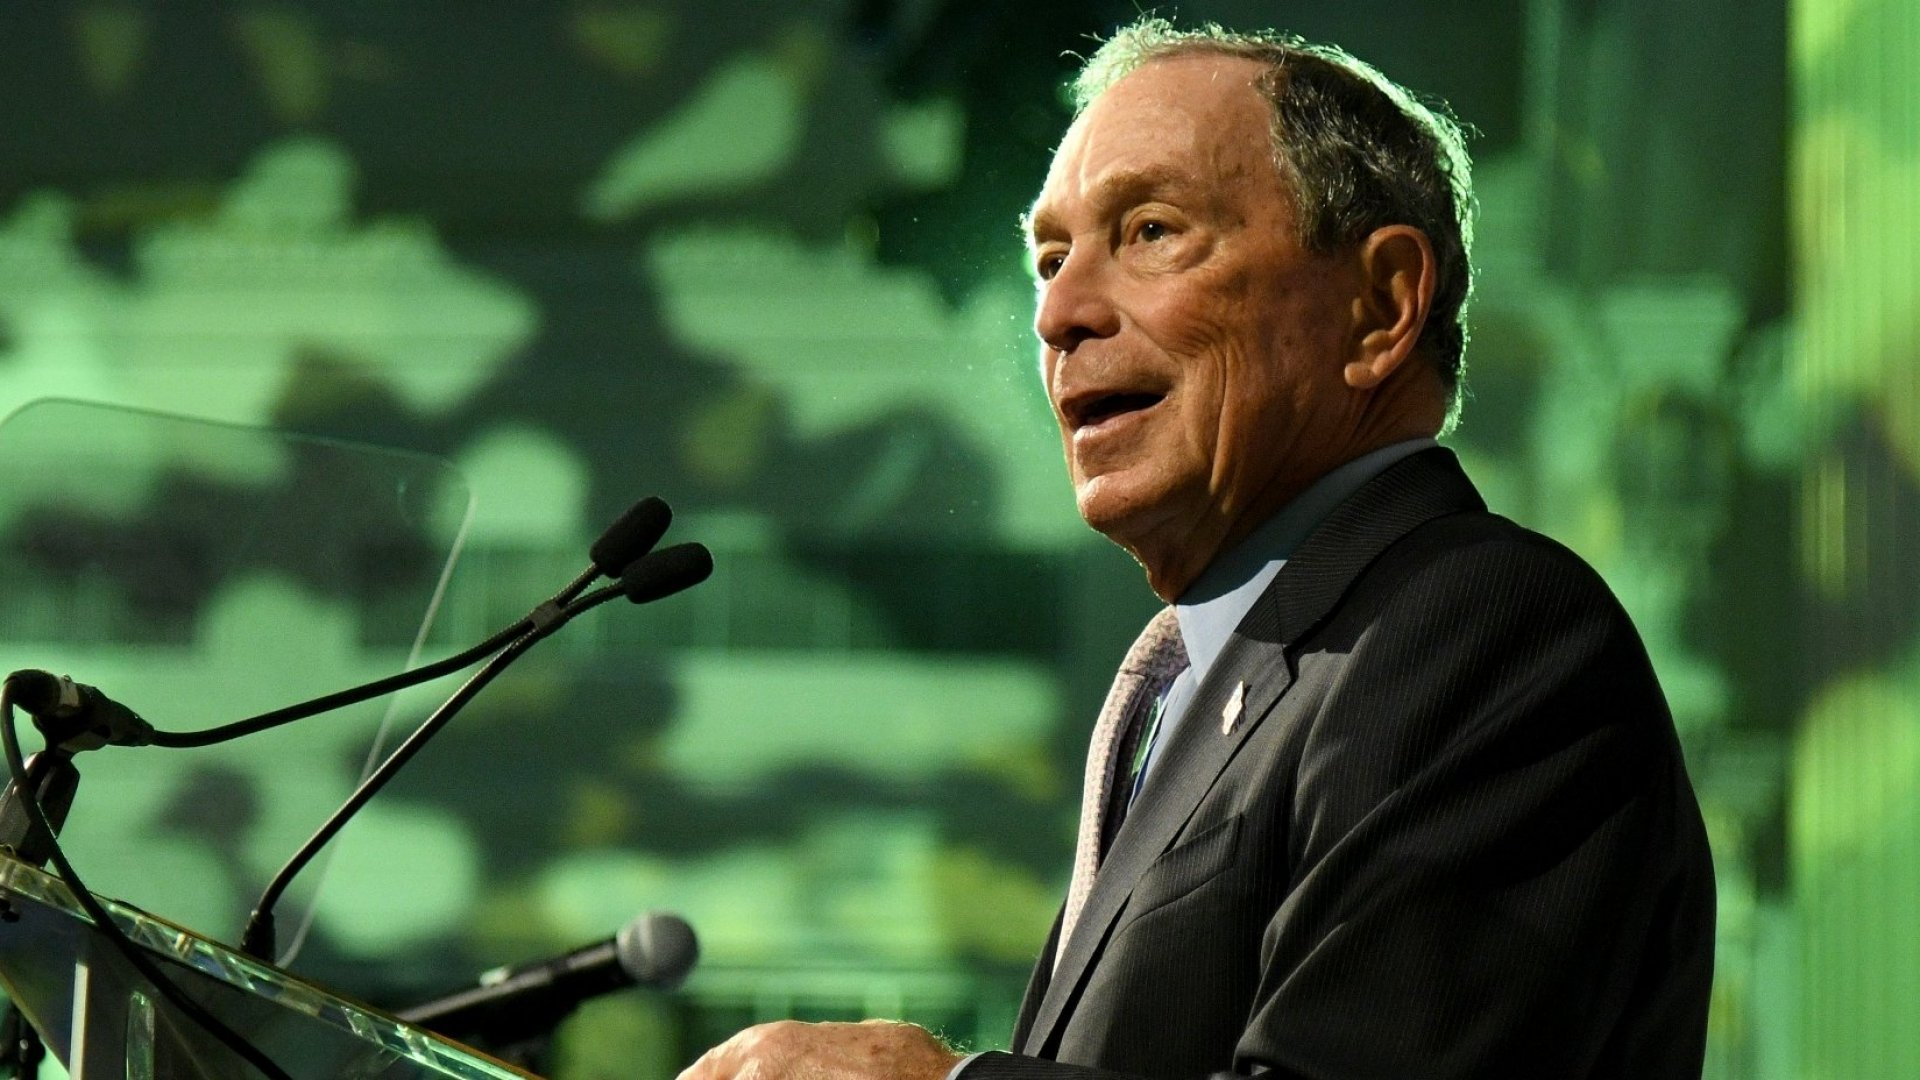 5 Personal Finance Tips From Billionaires Michael Bloomberg, Warren Buffett, and Ray Dalio